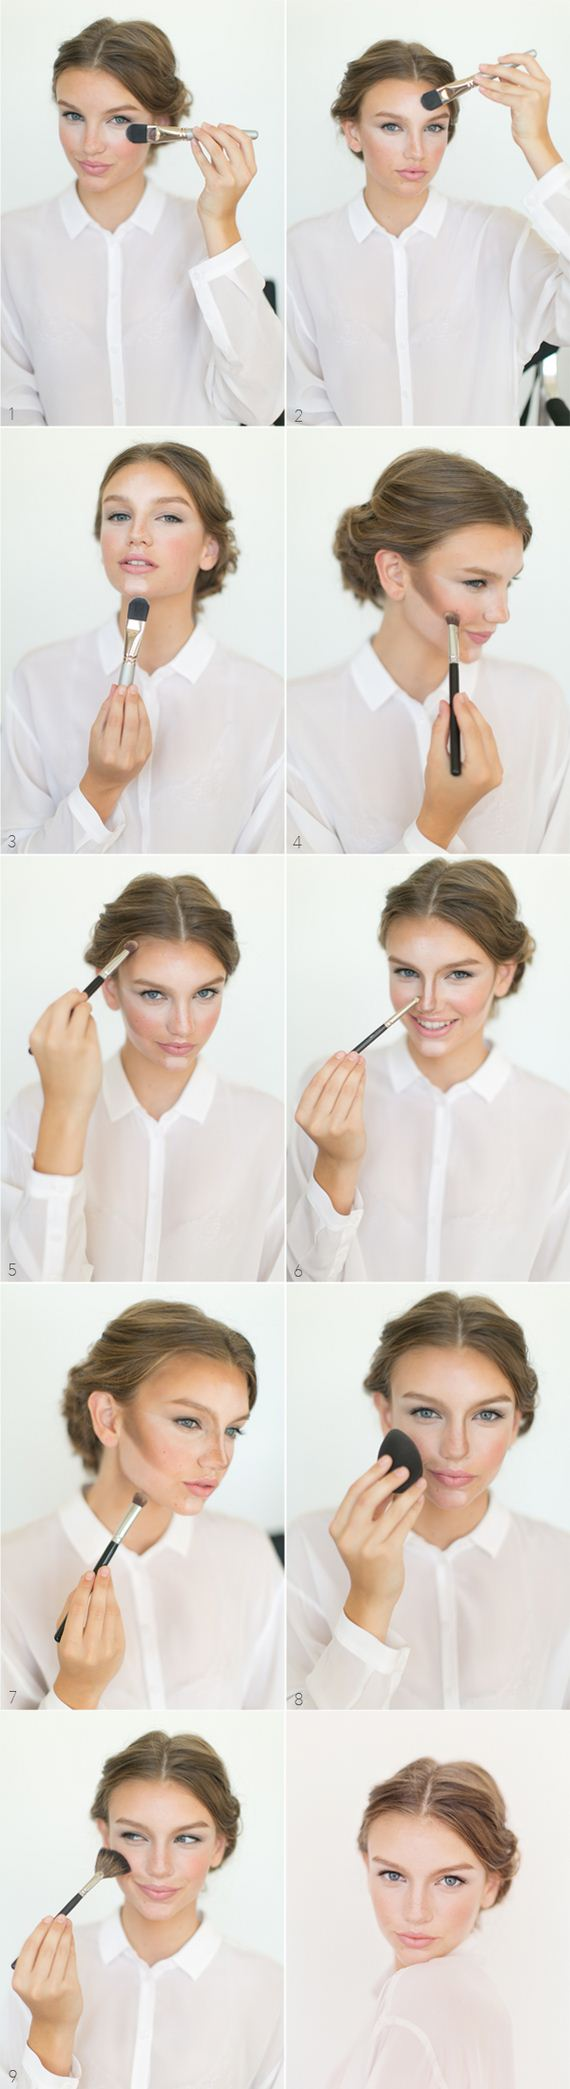 01-useful-makeup